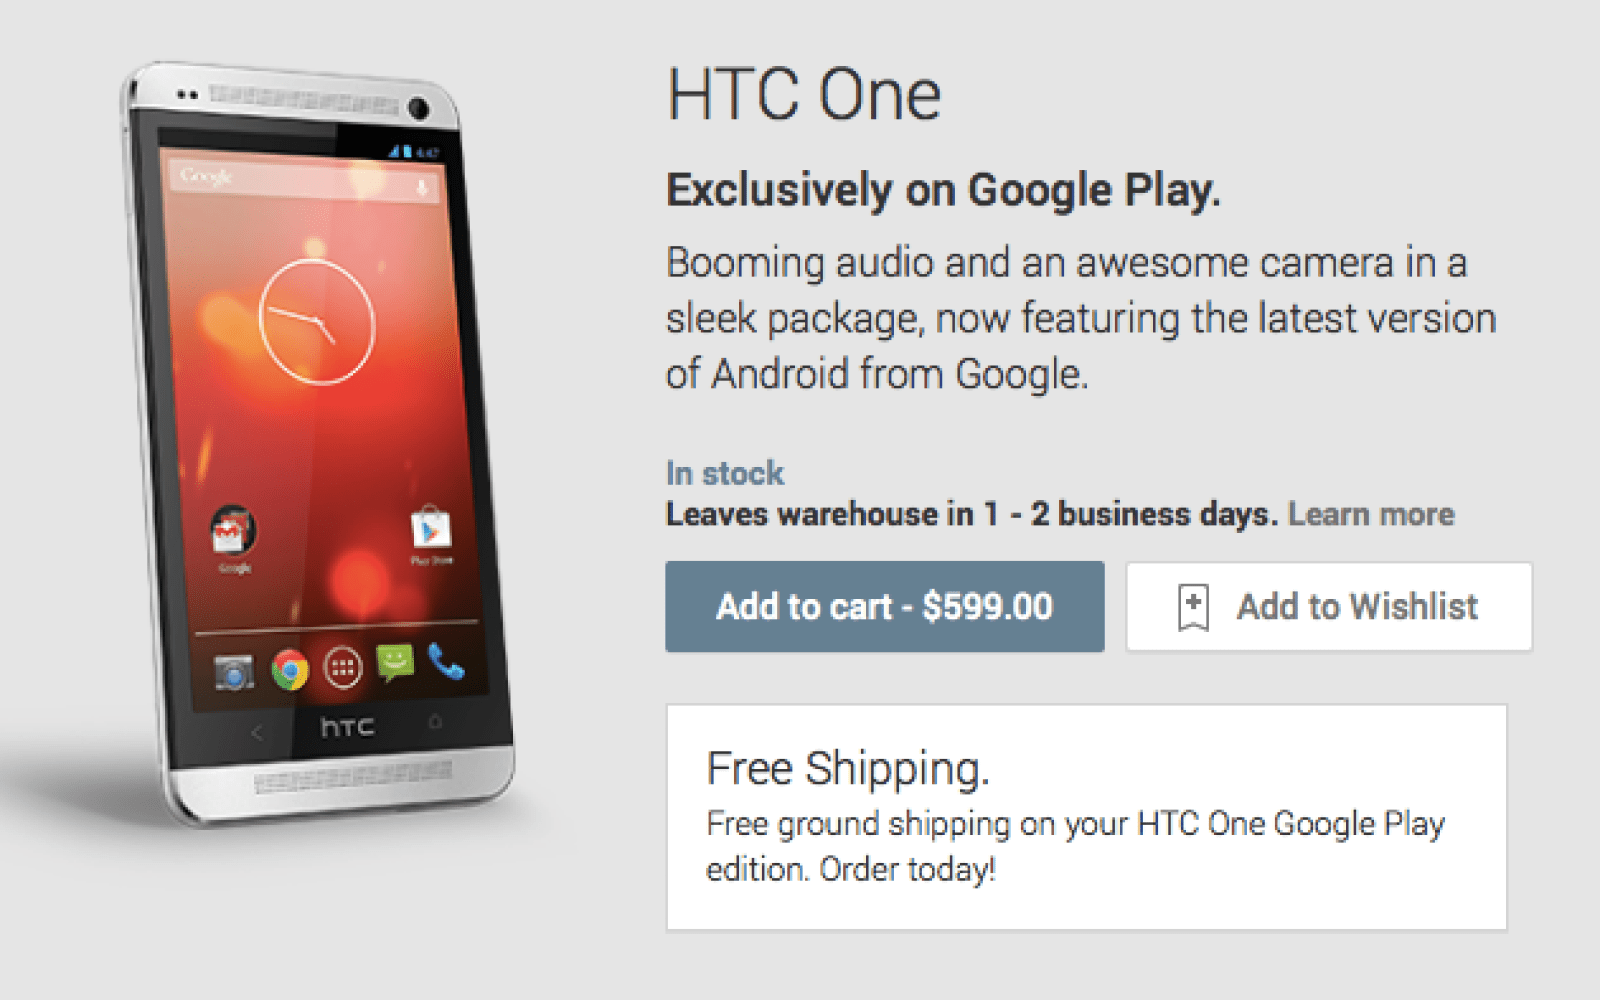 HTC One Google Play edition next to receive Android 4.4.2